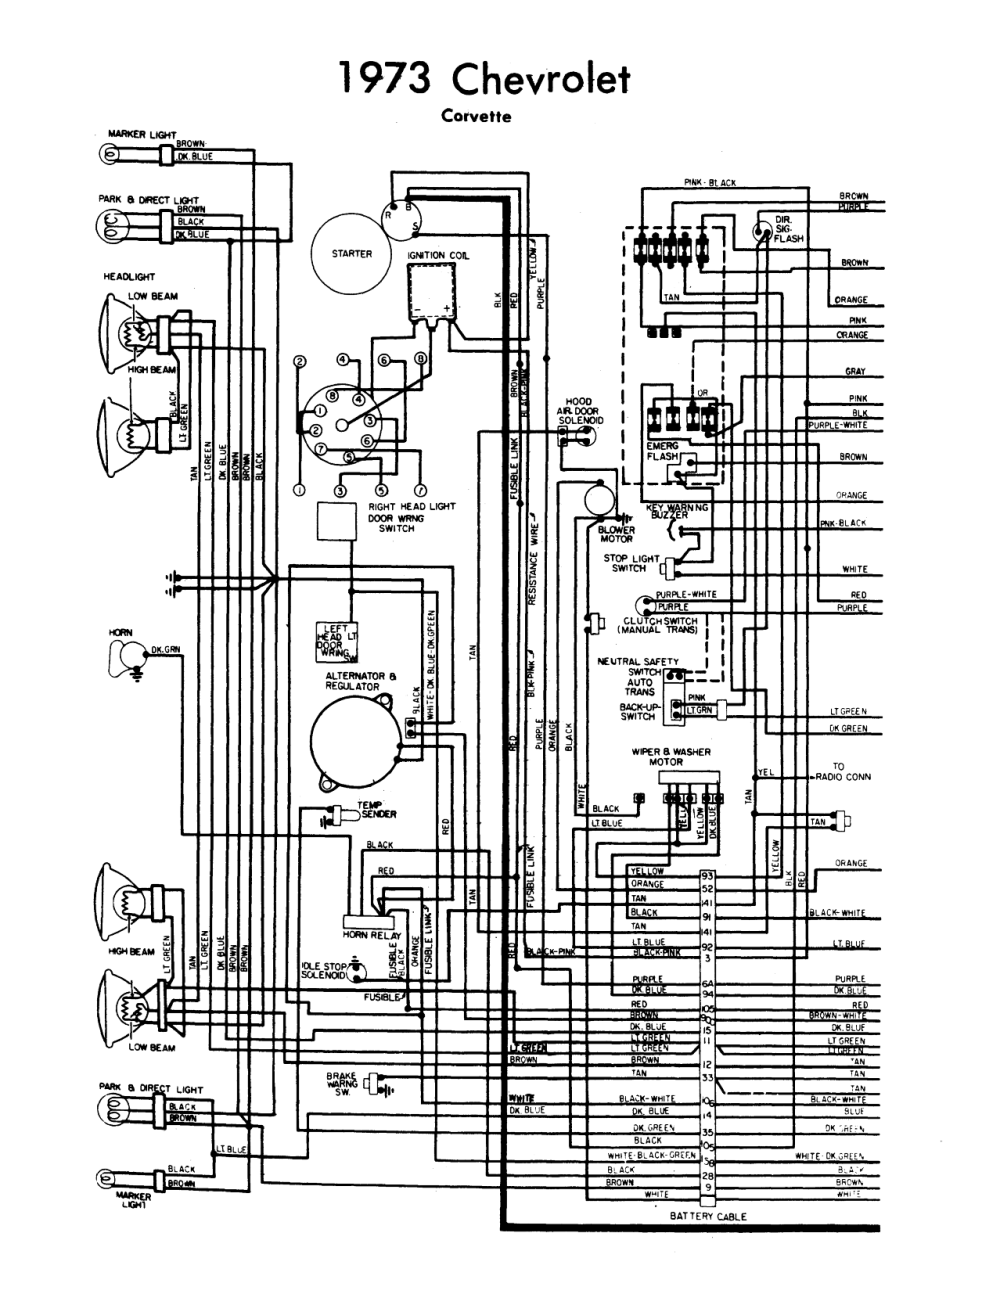 medium resolution of  75 c3 corvette wiring diagram free download 1973 corvette wiring schematic wiring diagram showelectronic ignition wiring diagram 73 corvette wiring